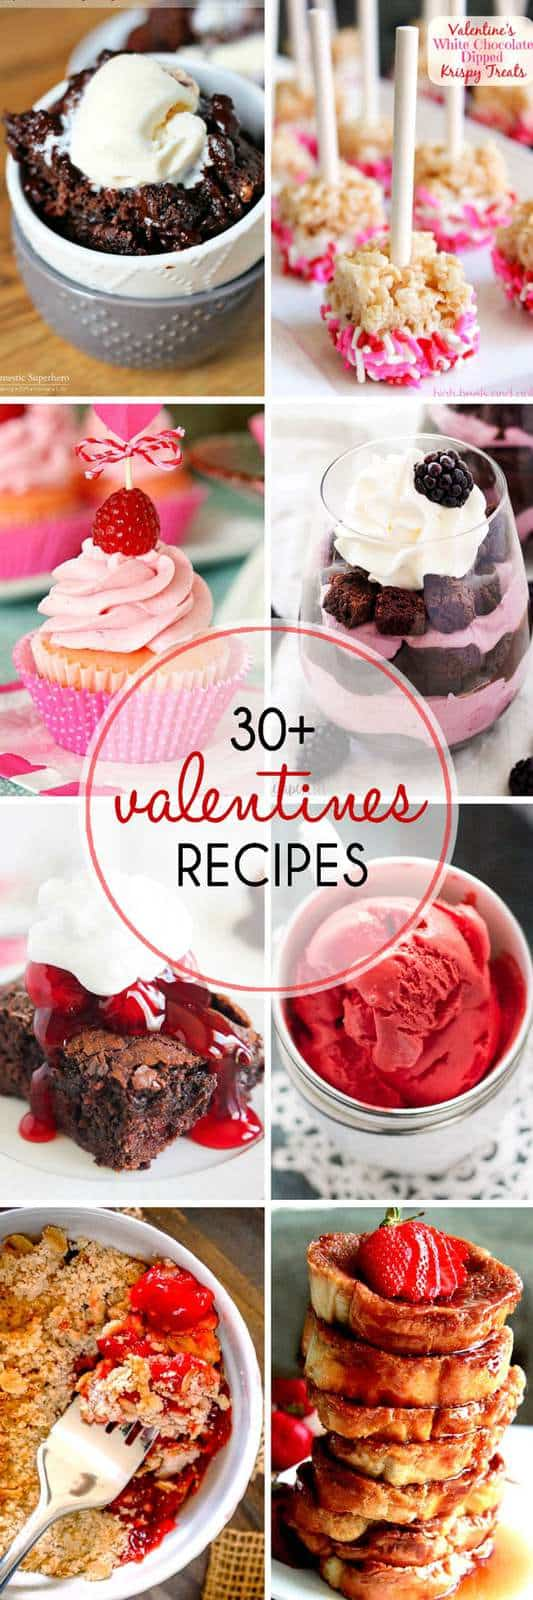 30+ of The Best Valentine's Day Recipes - cupcakes, cookies, brownies, cakes, and more in our favorite valentine flavors like chocolate, raspberry, and red velvet. | cupcakesandkalechips.com